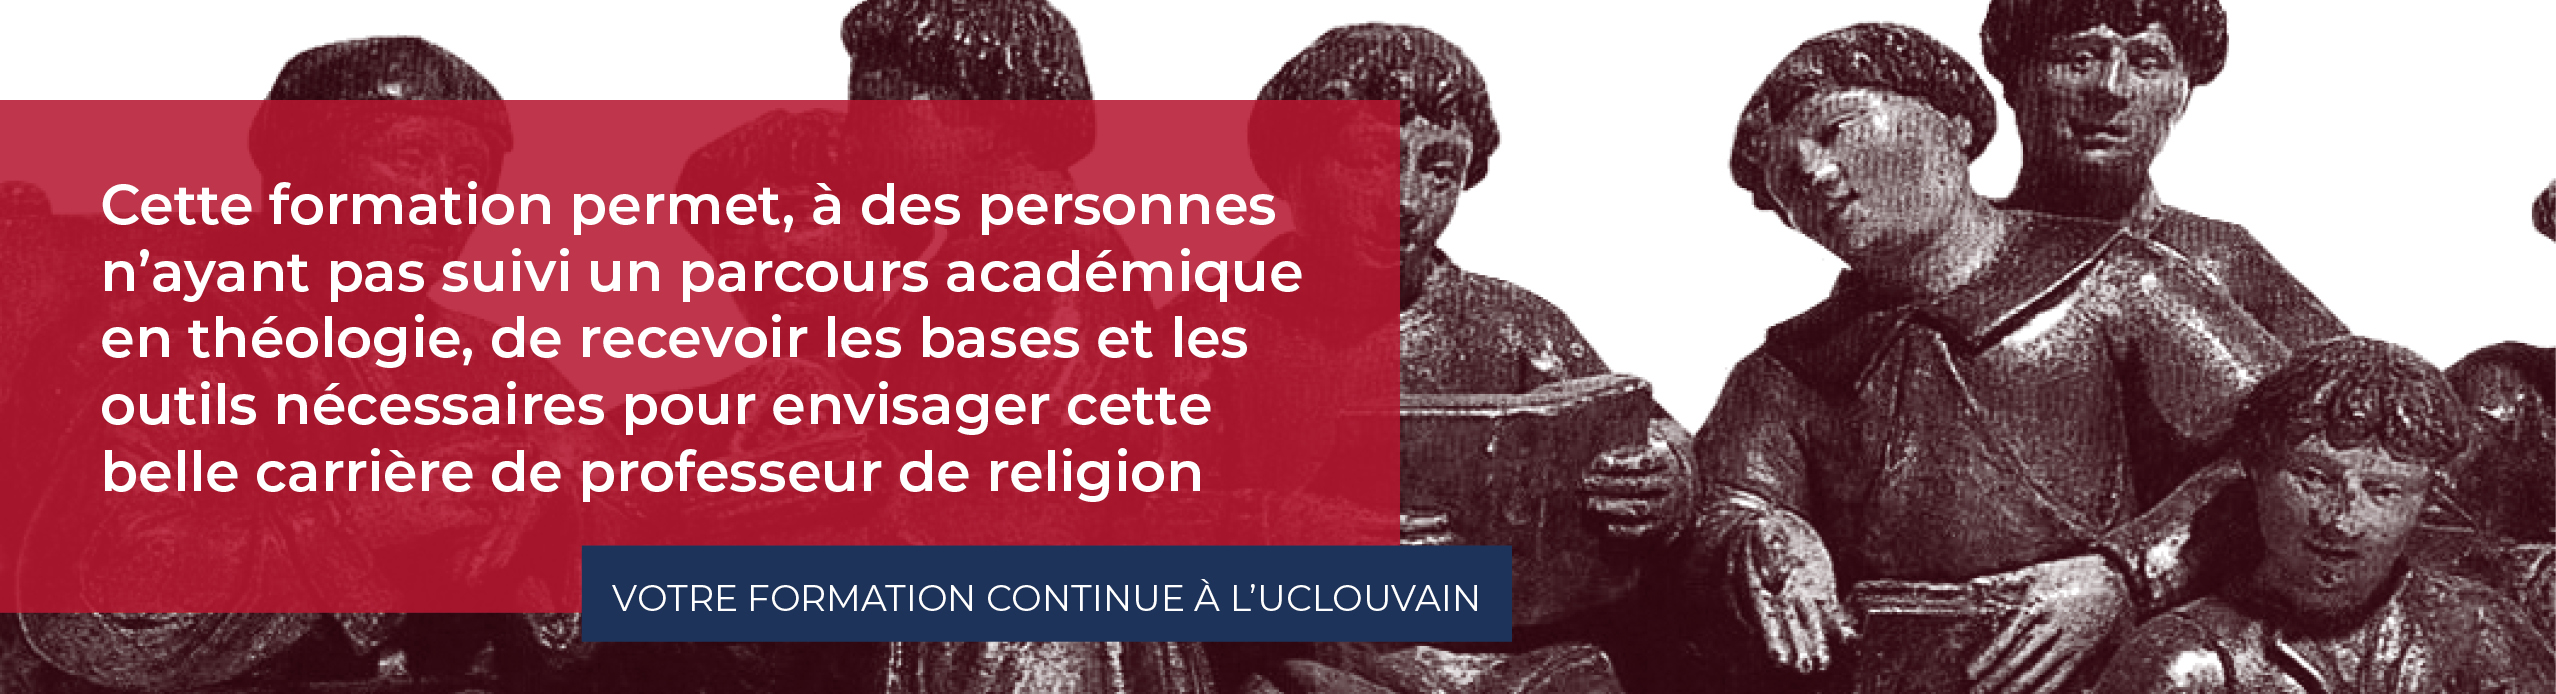 CDER_catholique_Header_Homepage.jpg